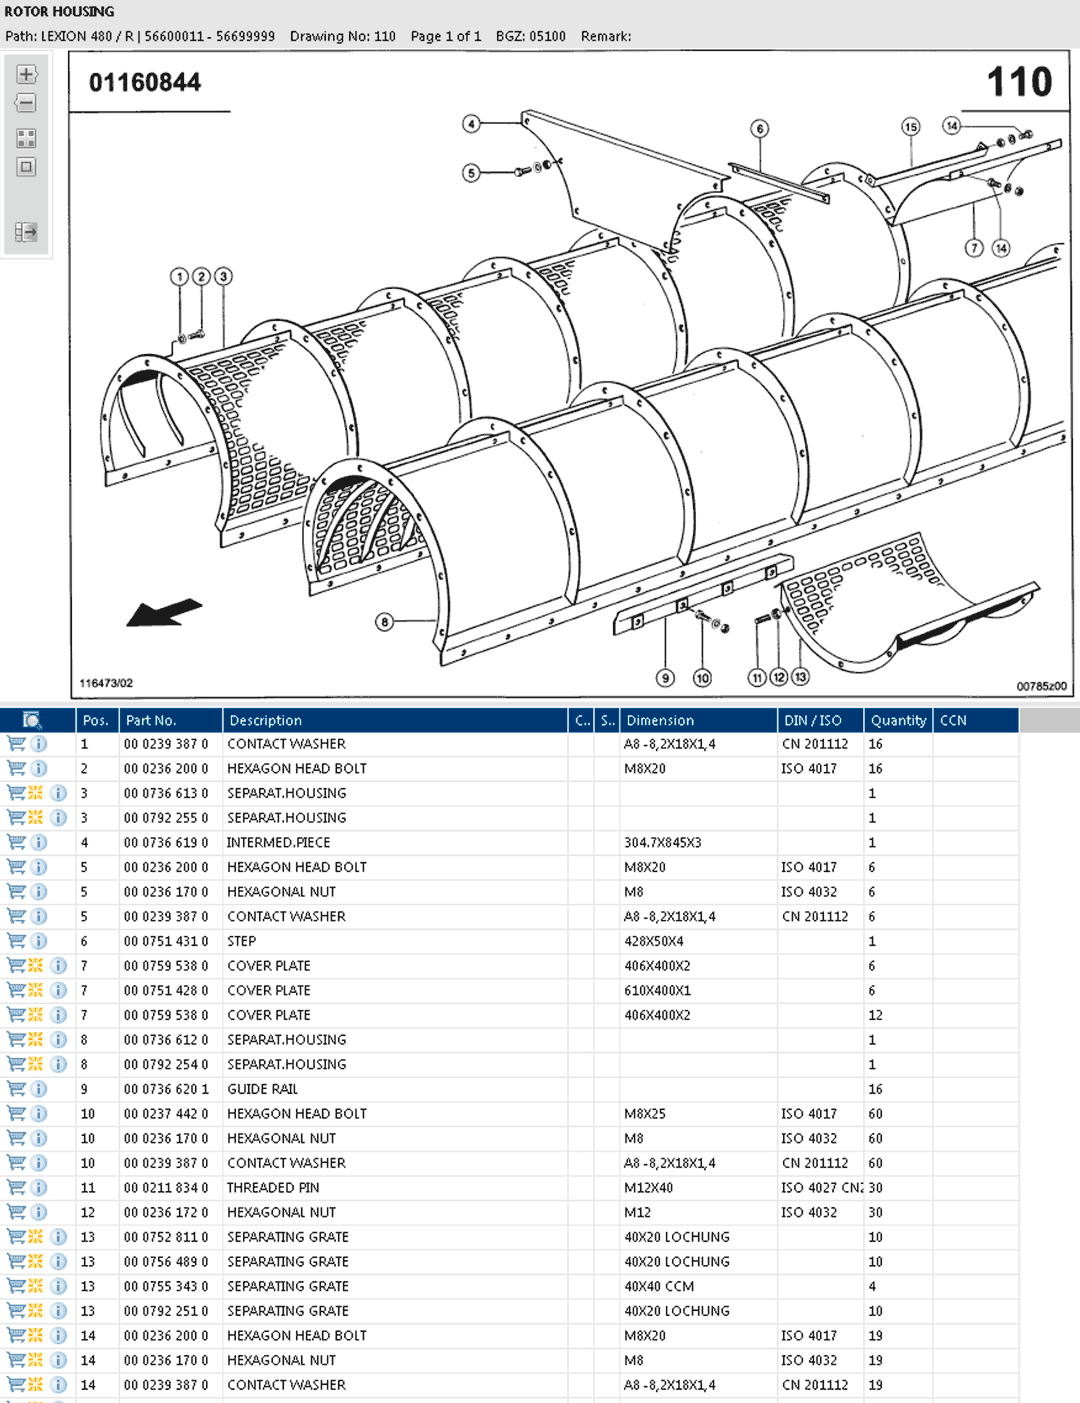 Lexion 480R parts and schemes - rotor housing